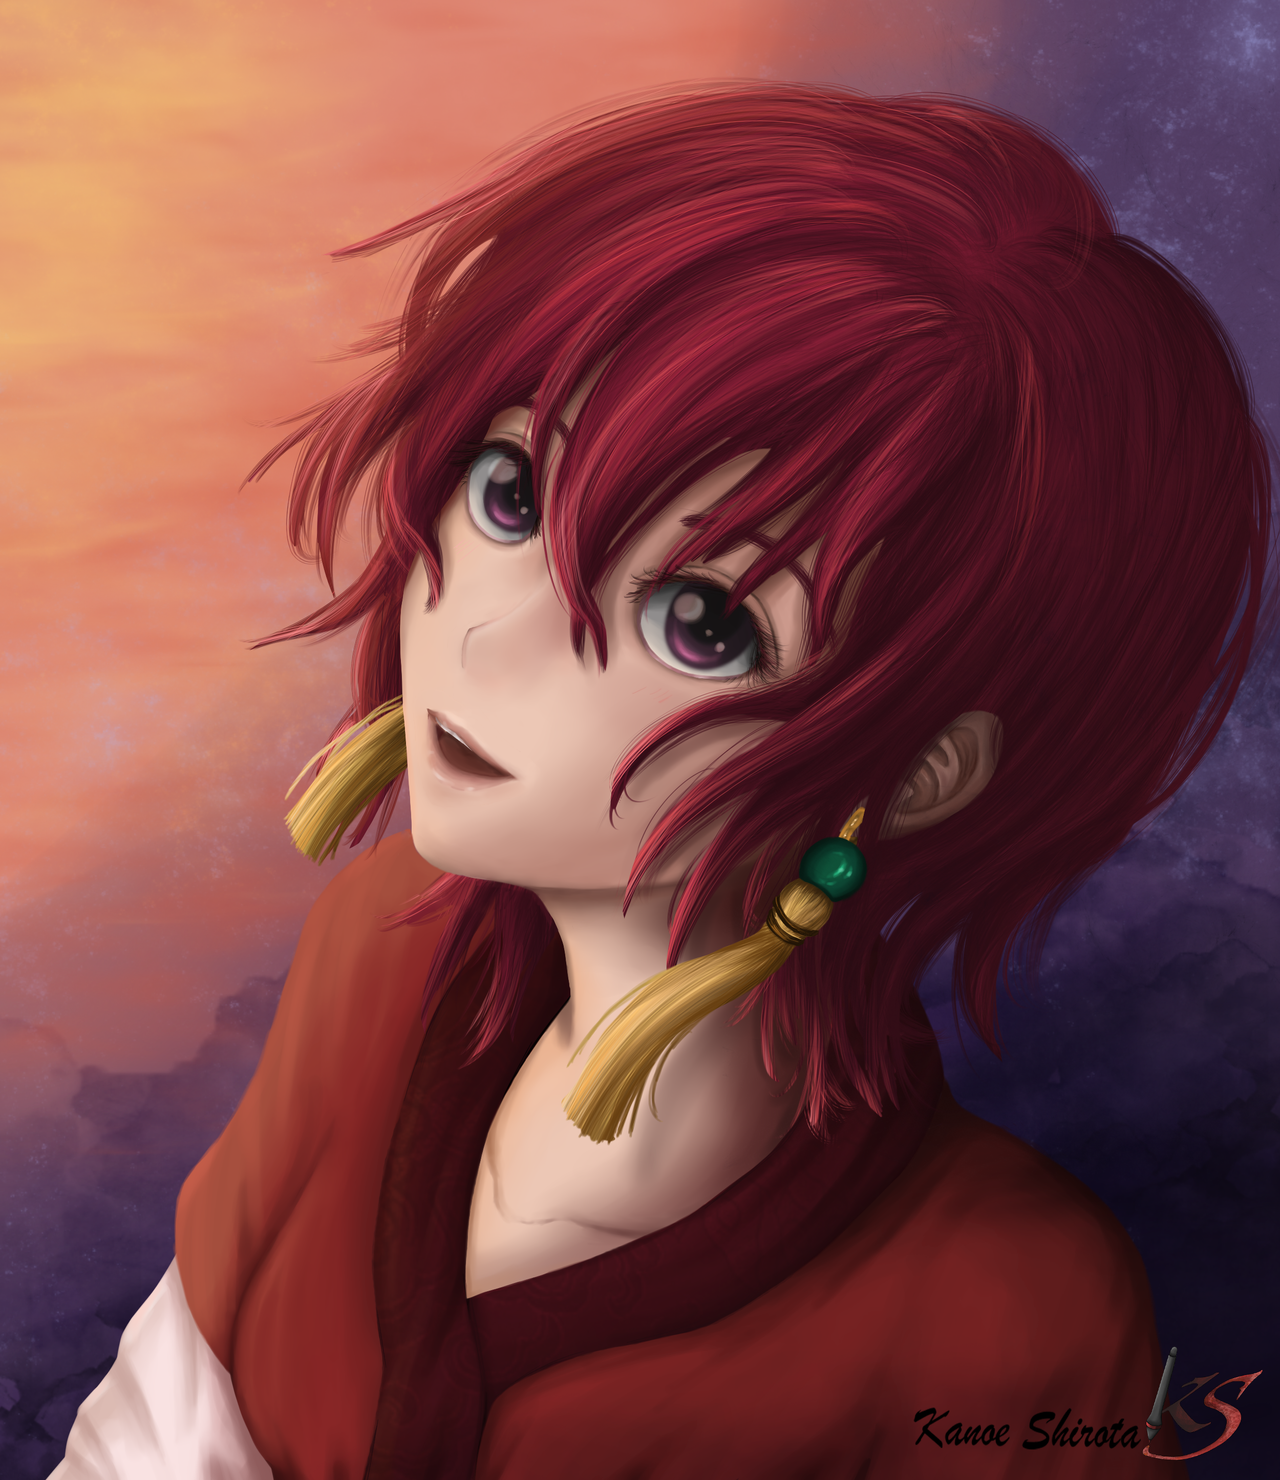 Yona in the blush of dawn (Akatsuki no Yona) by KanoeShirota